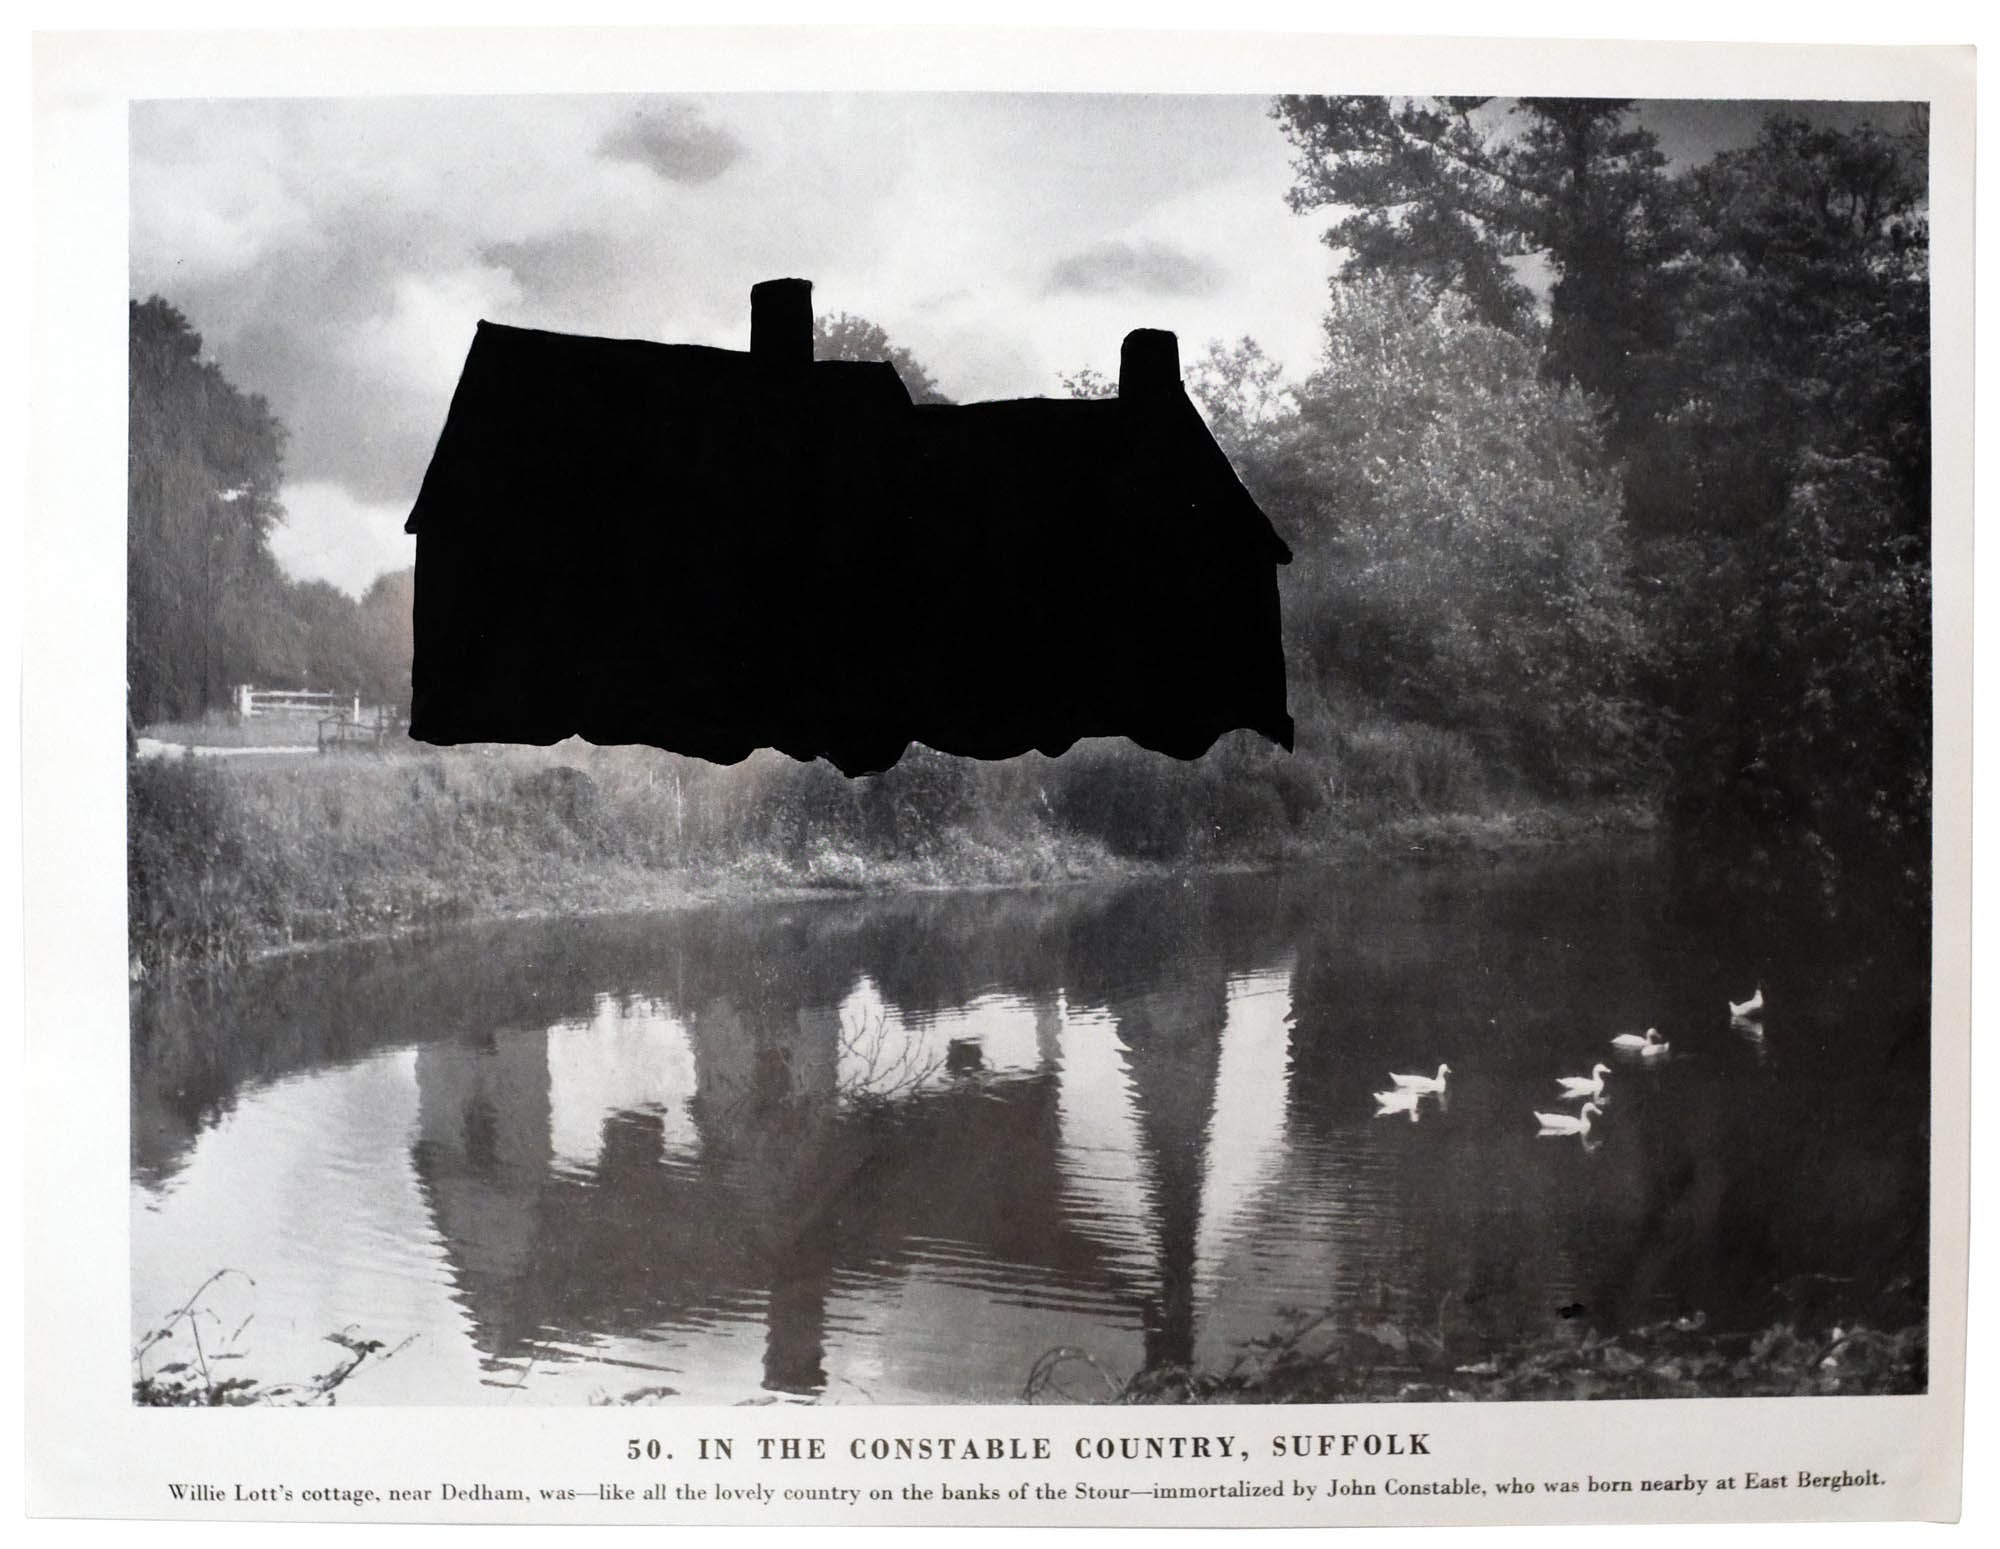 A print of 'Flatford Mill' by John Constable, with the house painted over with black paint